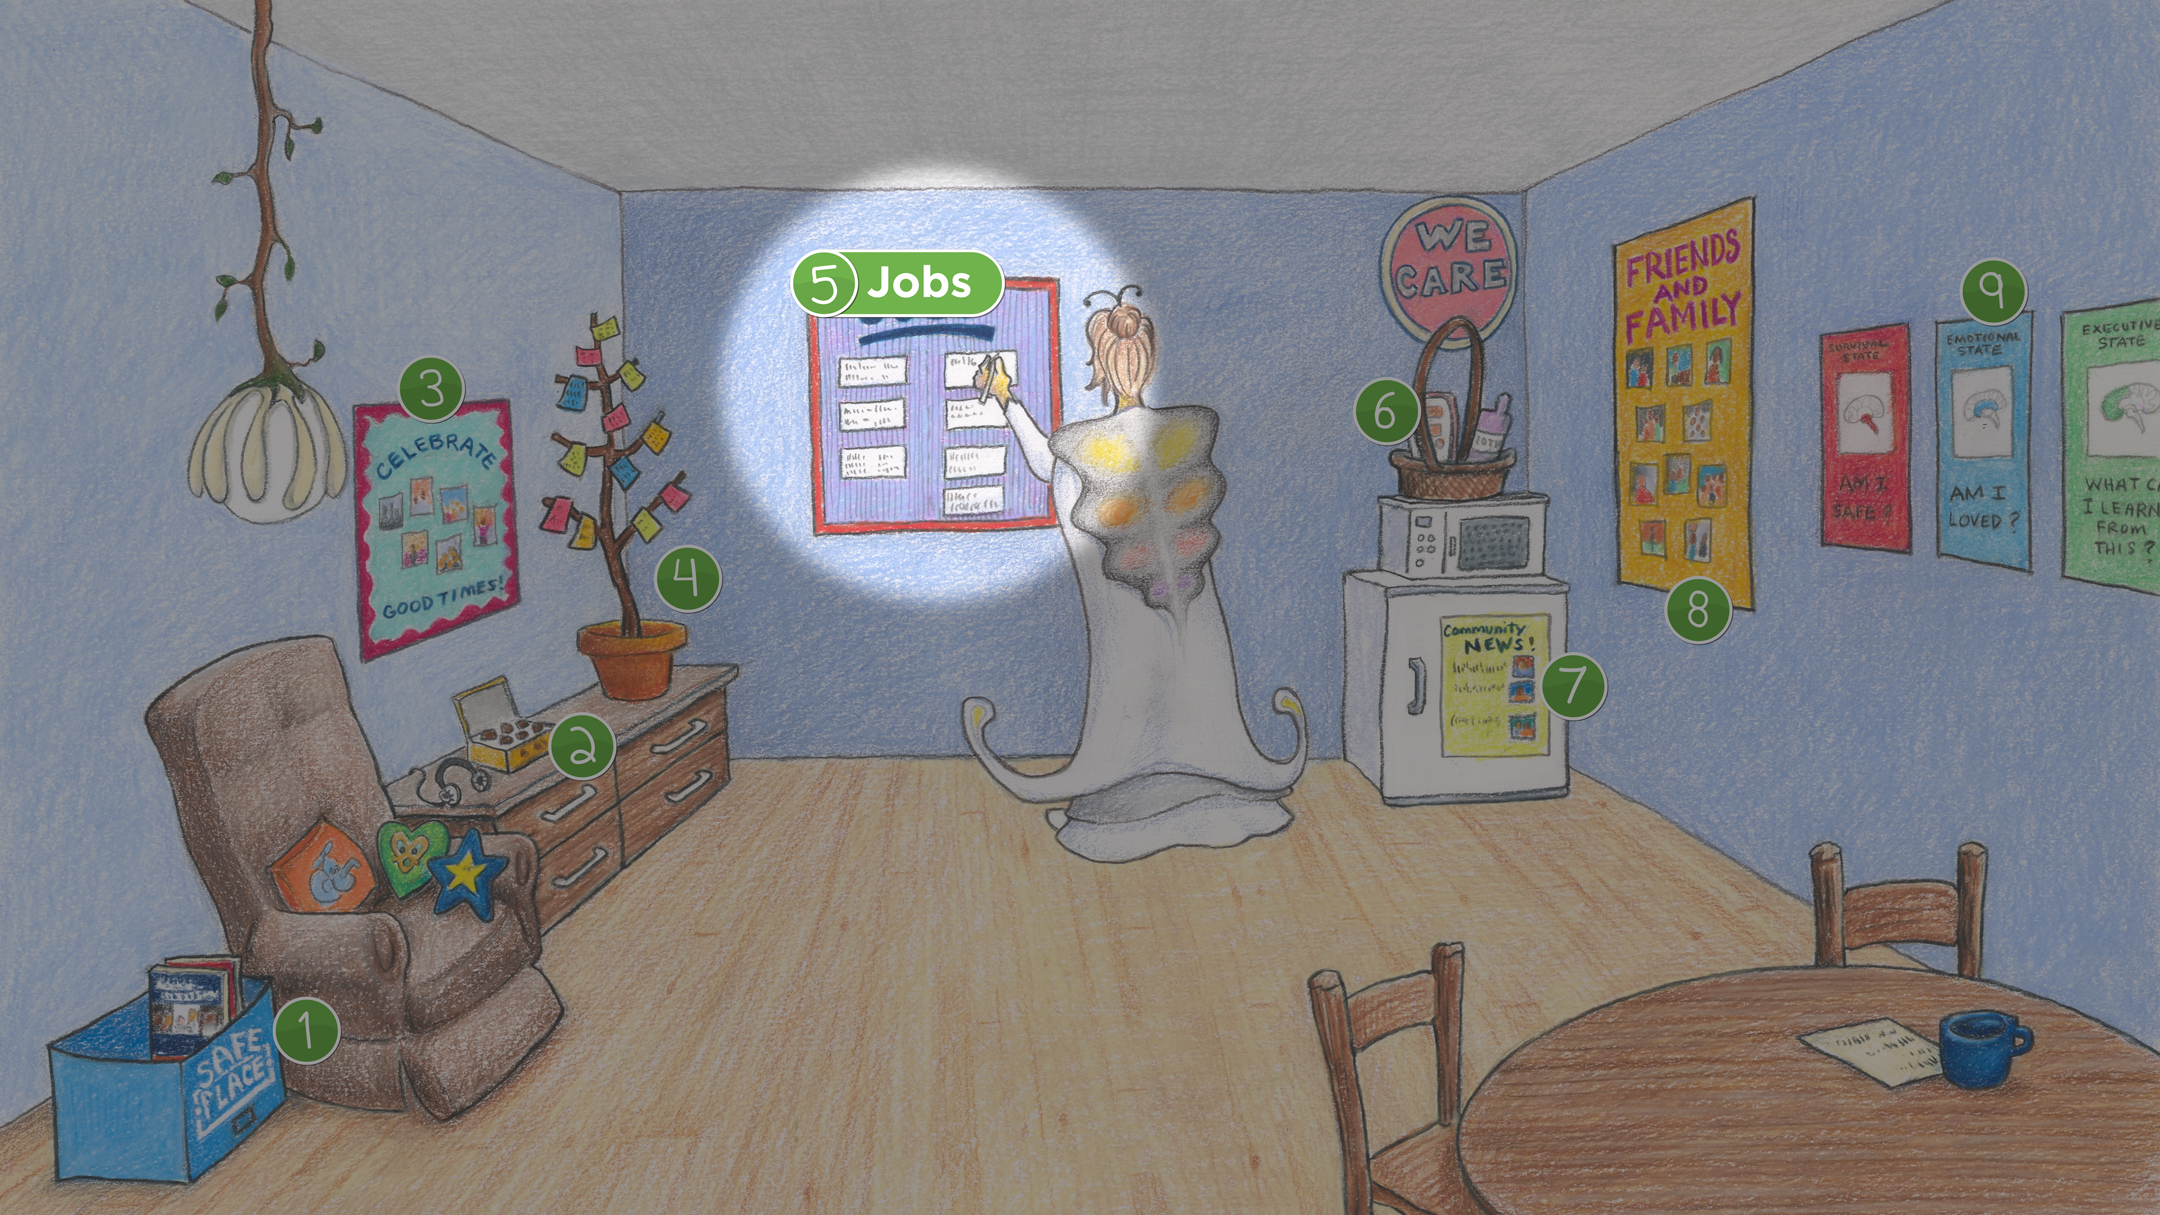 Teacher's Lounge: Jobs